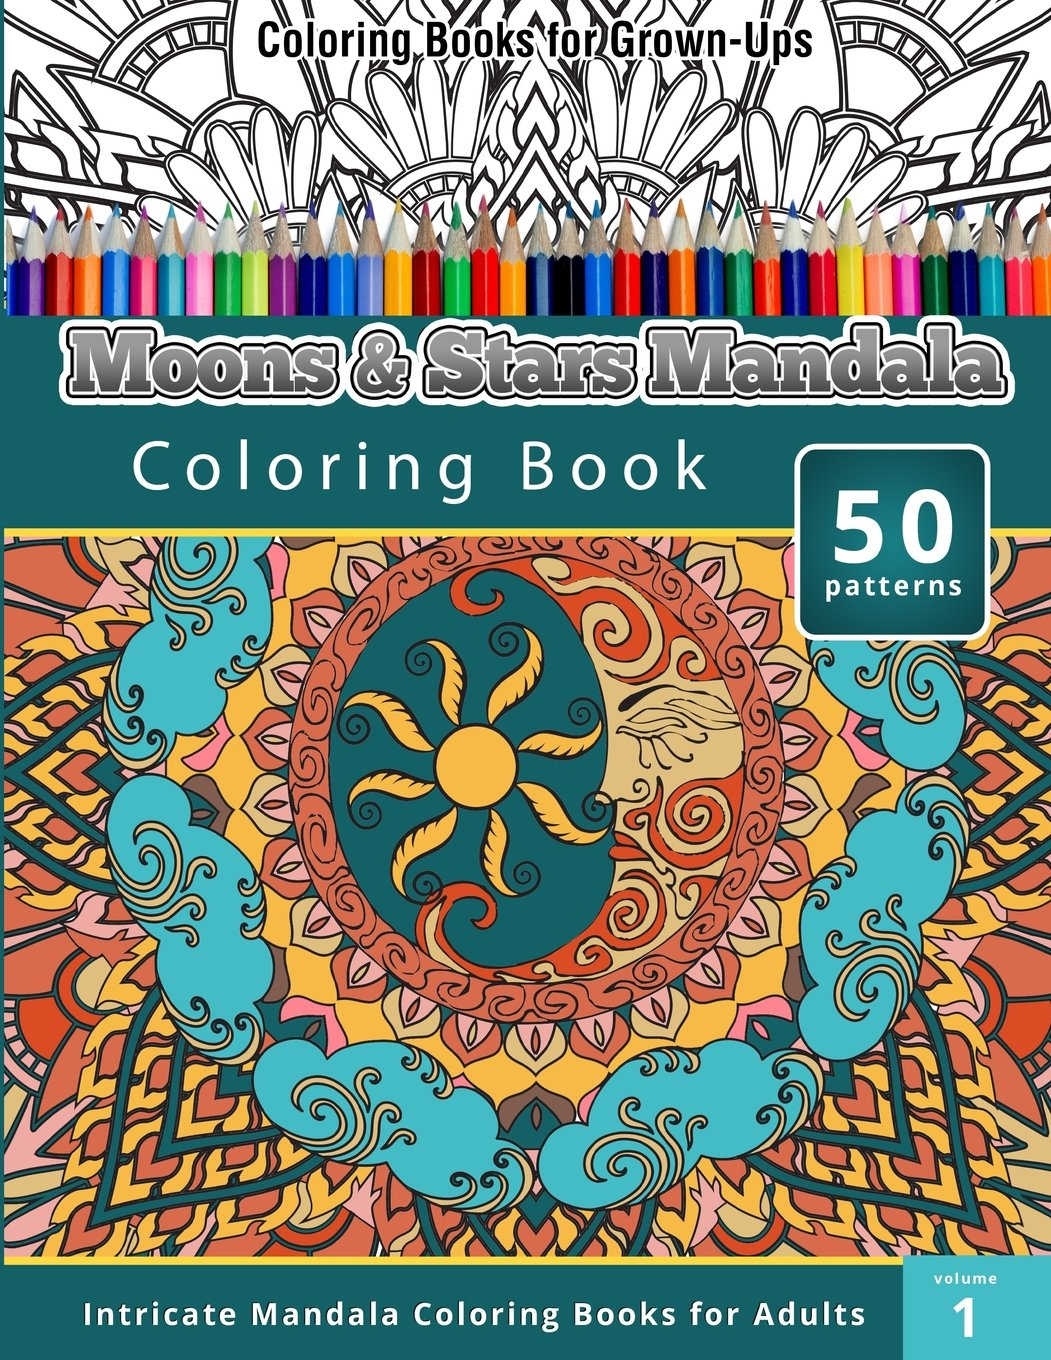 amazoncom coloring book for grown ups moons stars mandala coloring book 9781508811787 chiquita publishing books - Coloring Books For Grown Ups